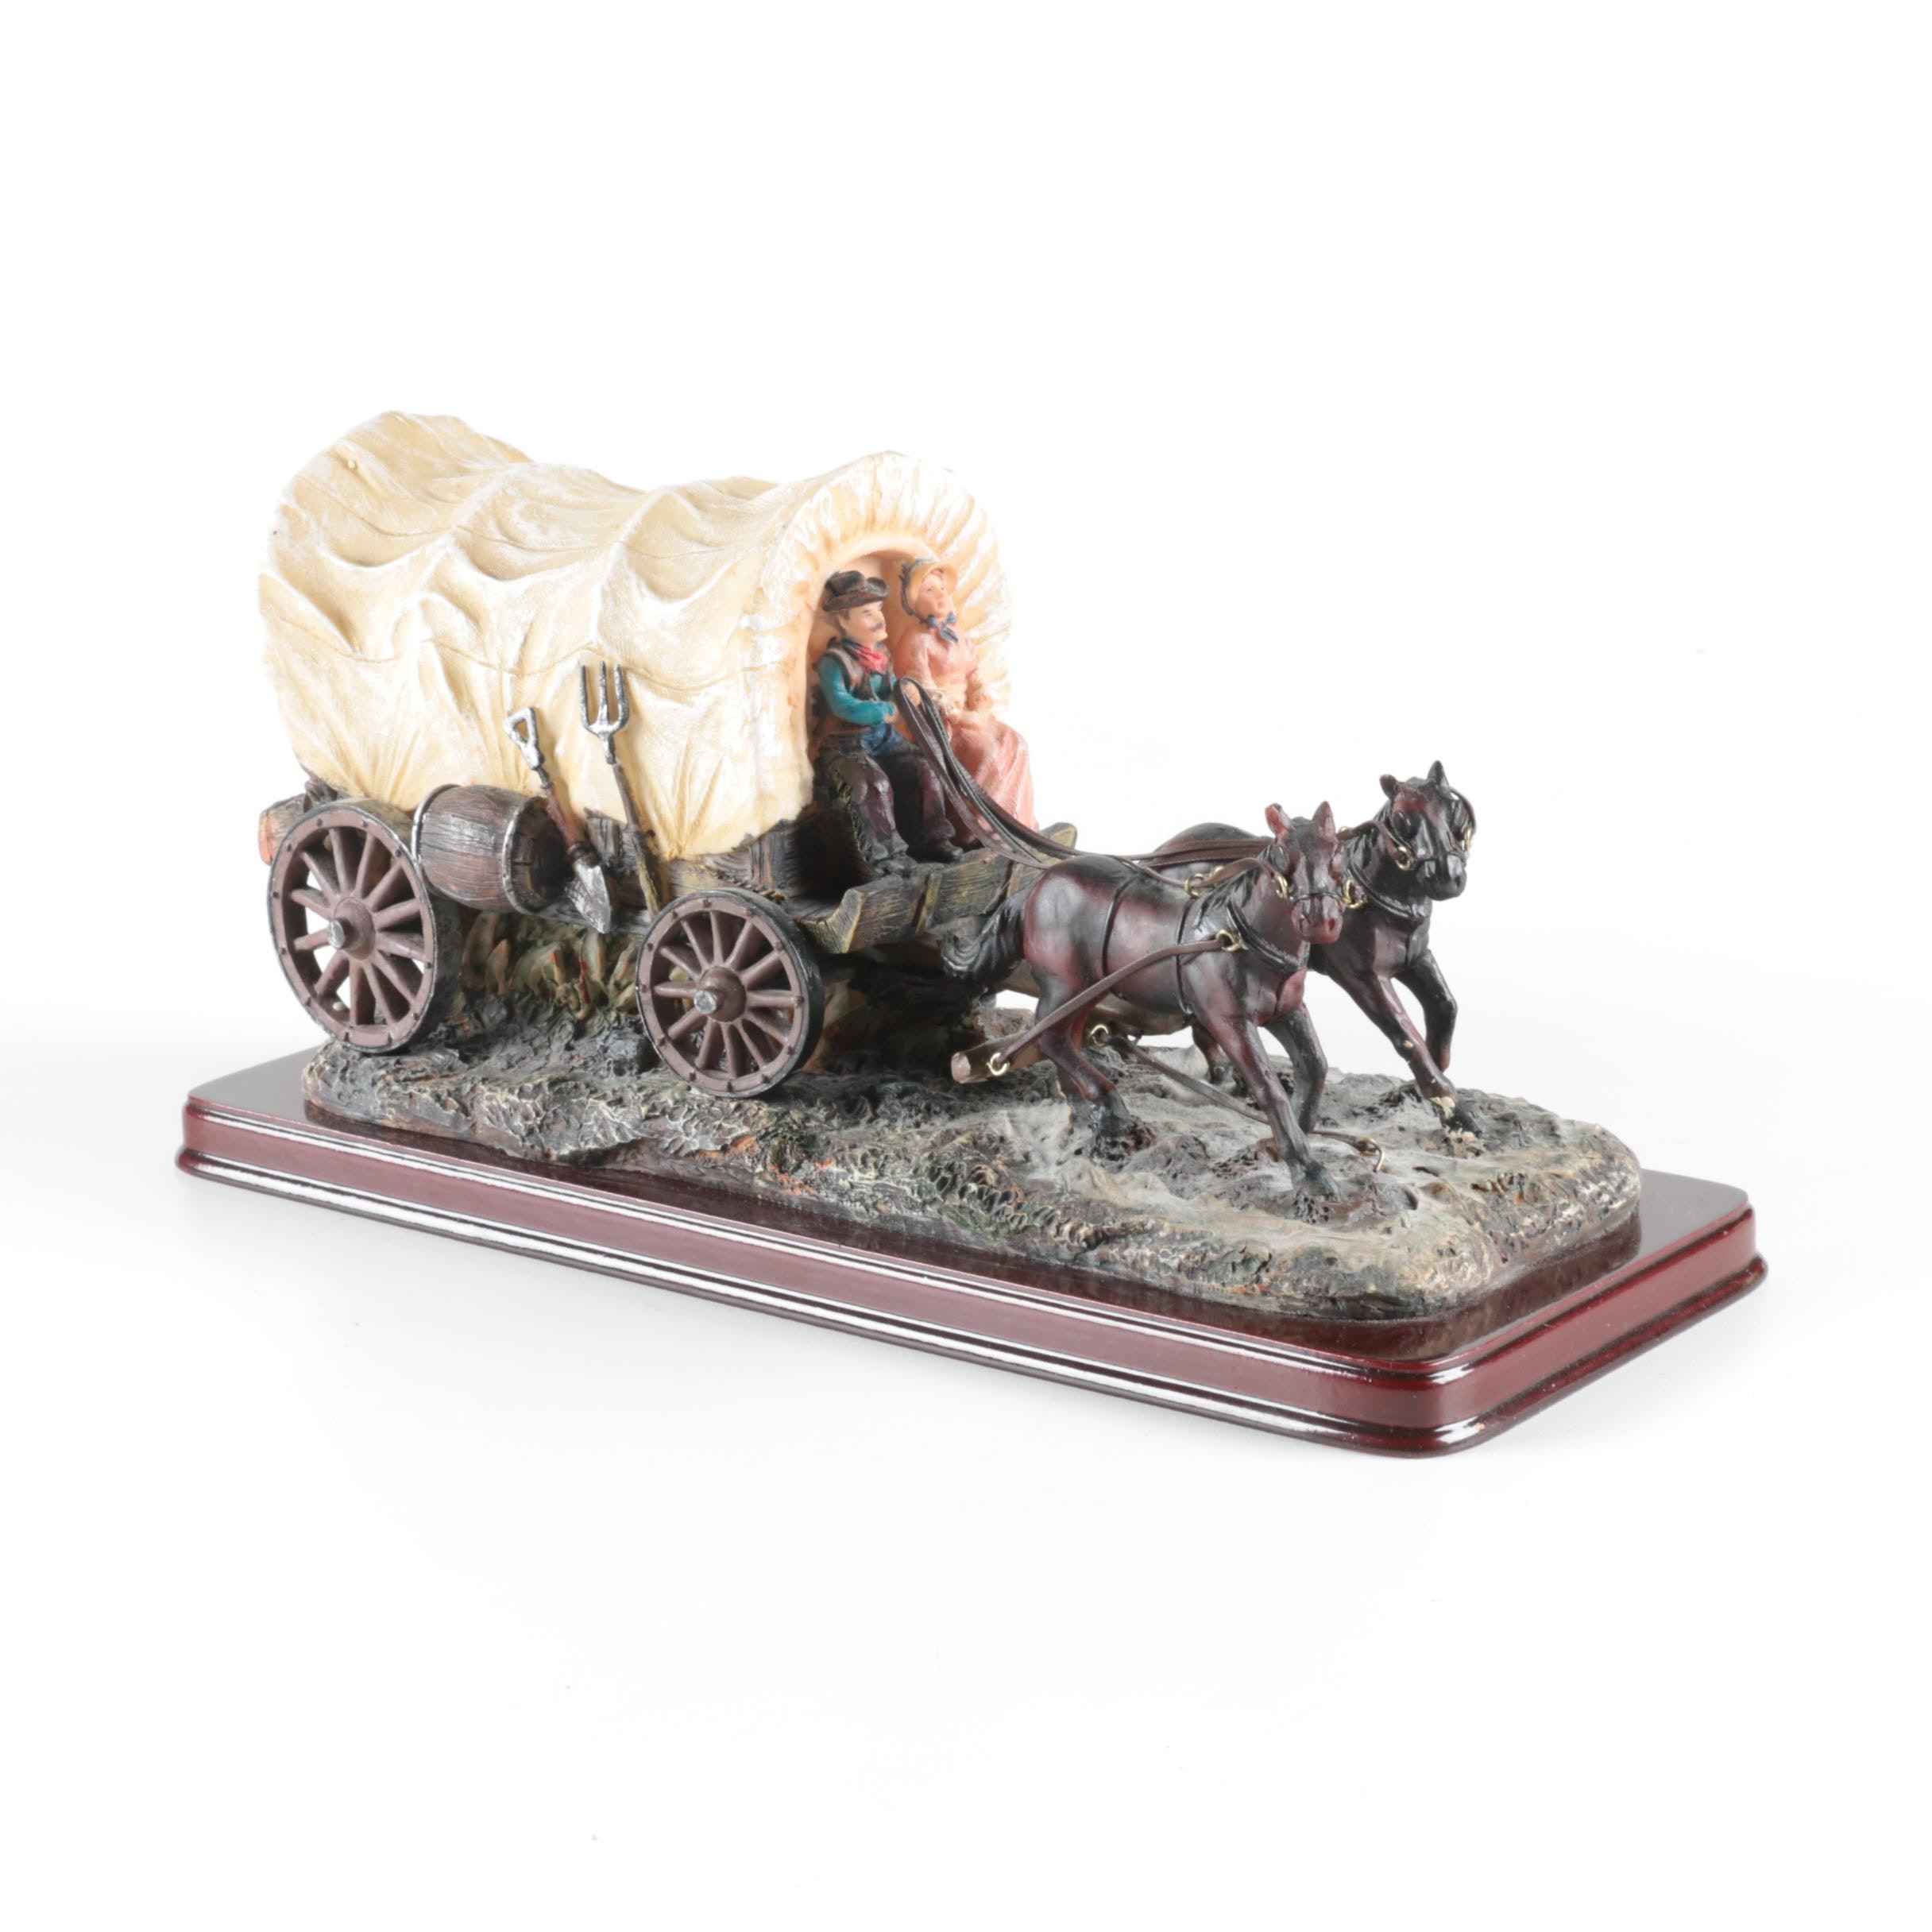 Resin Stagecoach Sculpture on a Wooden Plinth